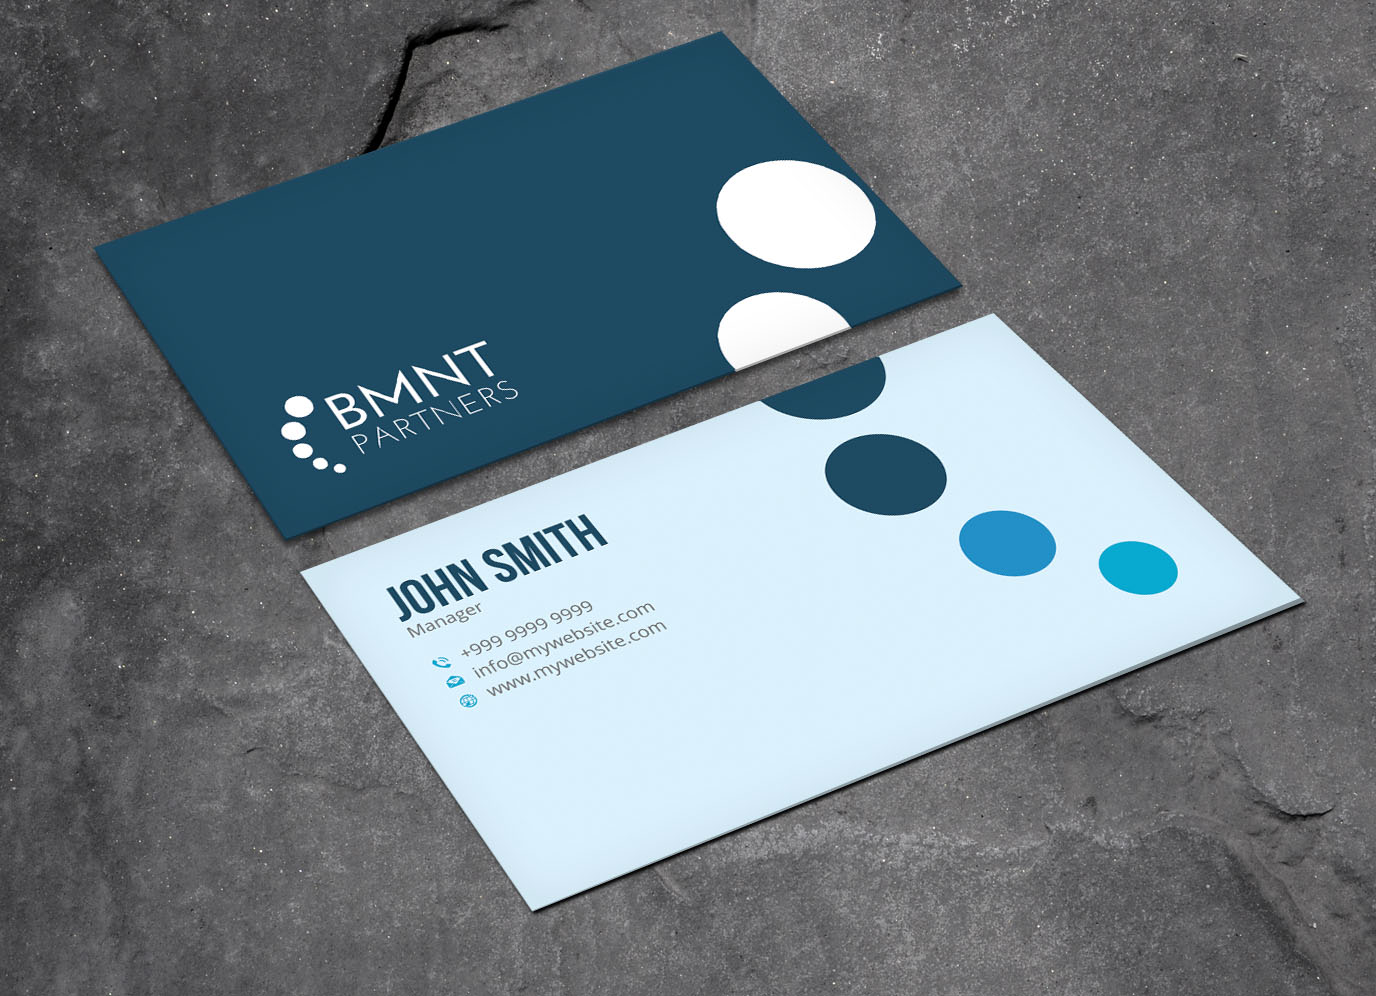 19 Classic Sample Namecard For Aircon Business Check More At Https Dougl Business Cards Creative Business Card Design Minimalist Unique Business Cards Design